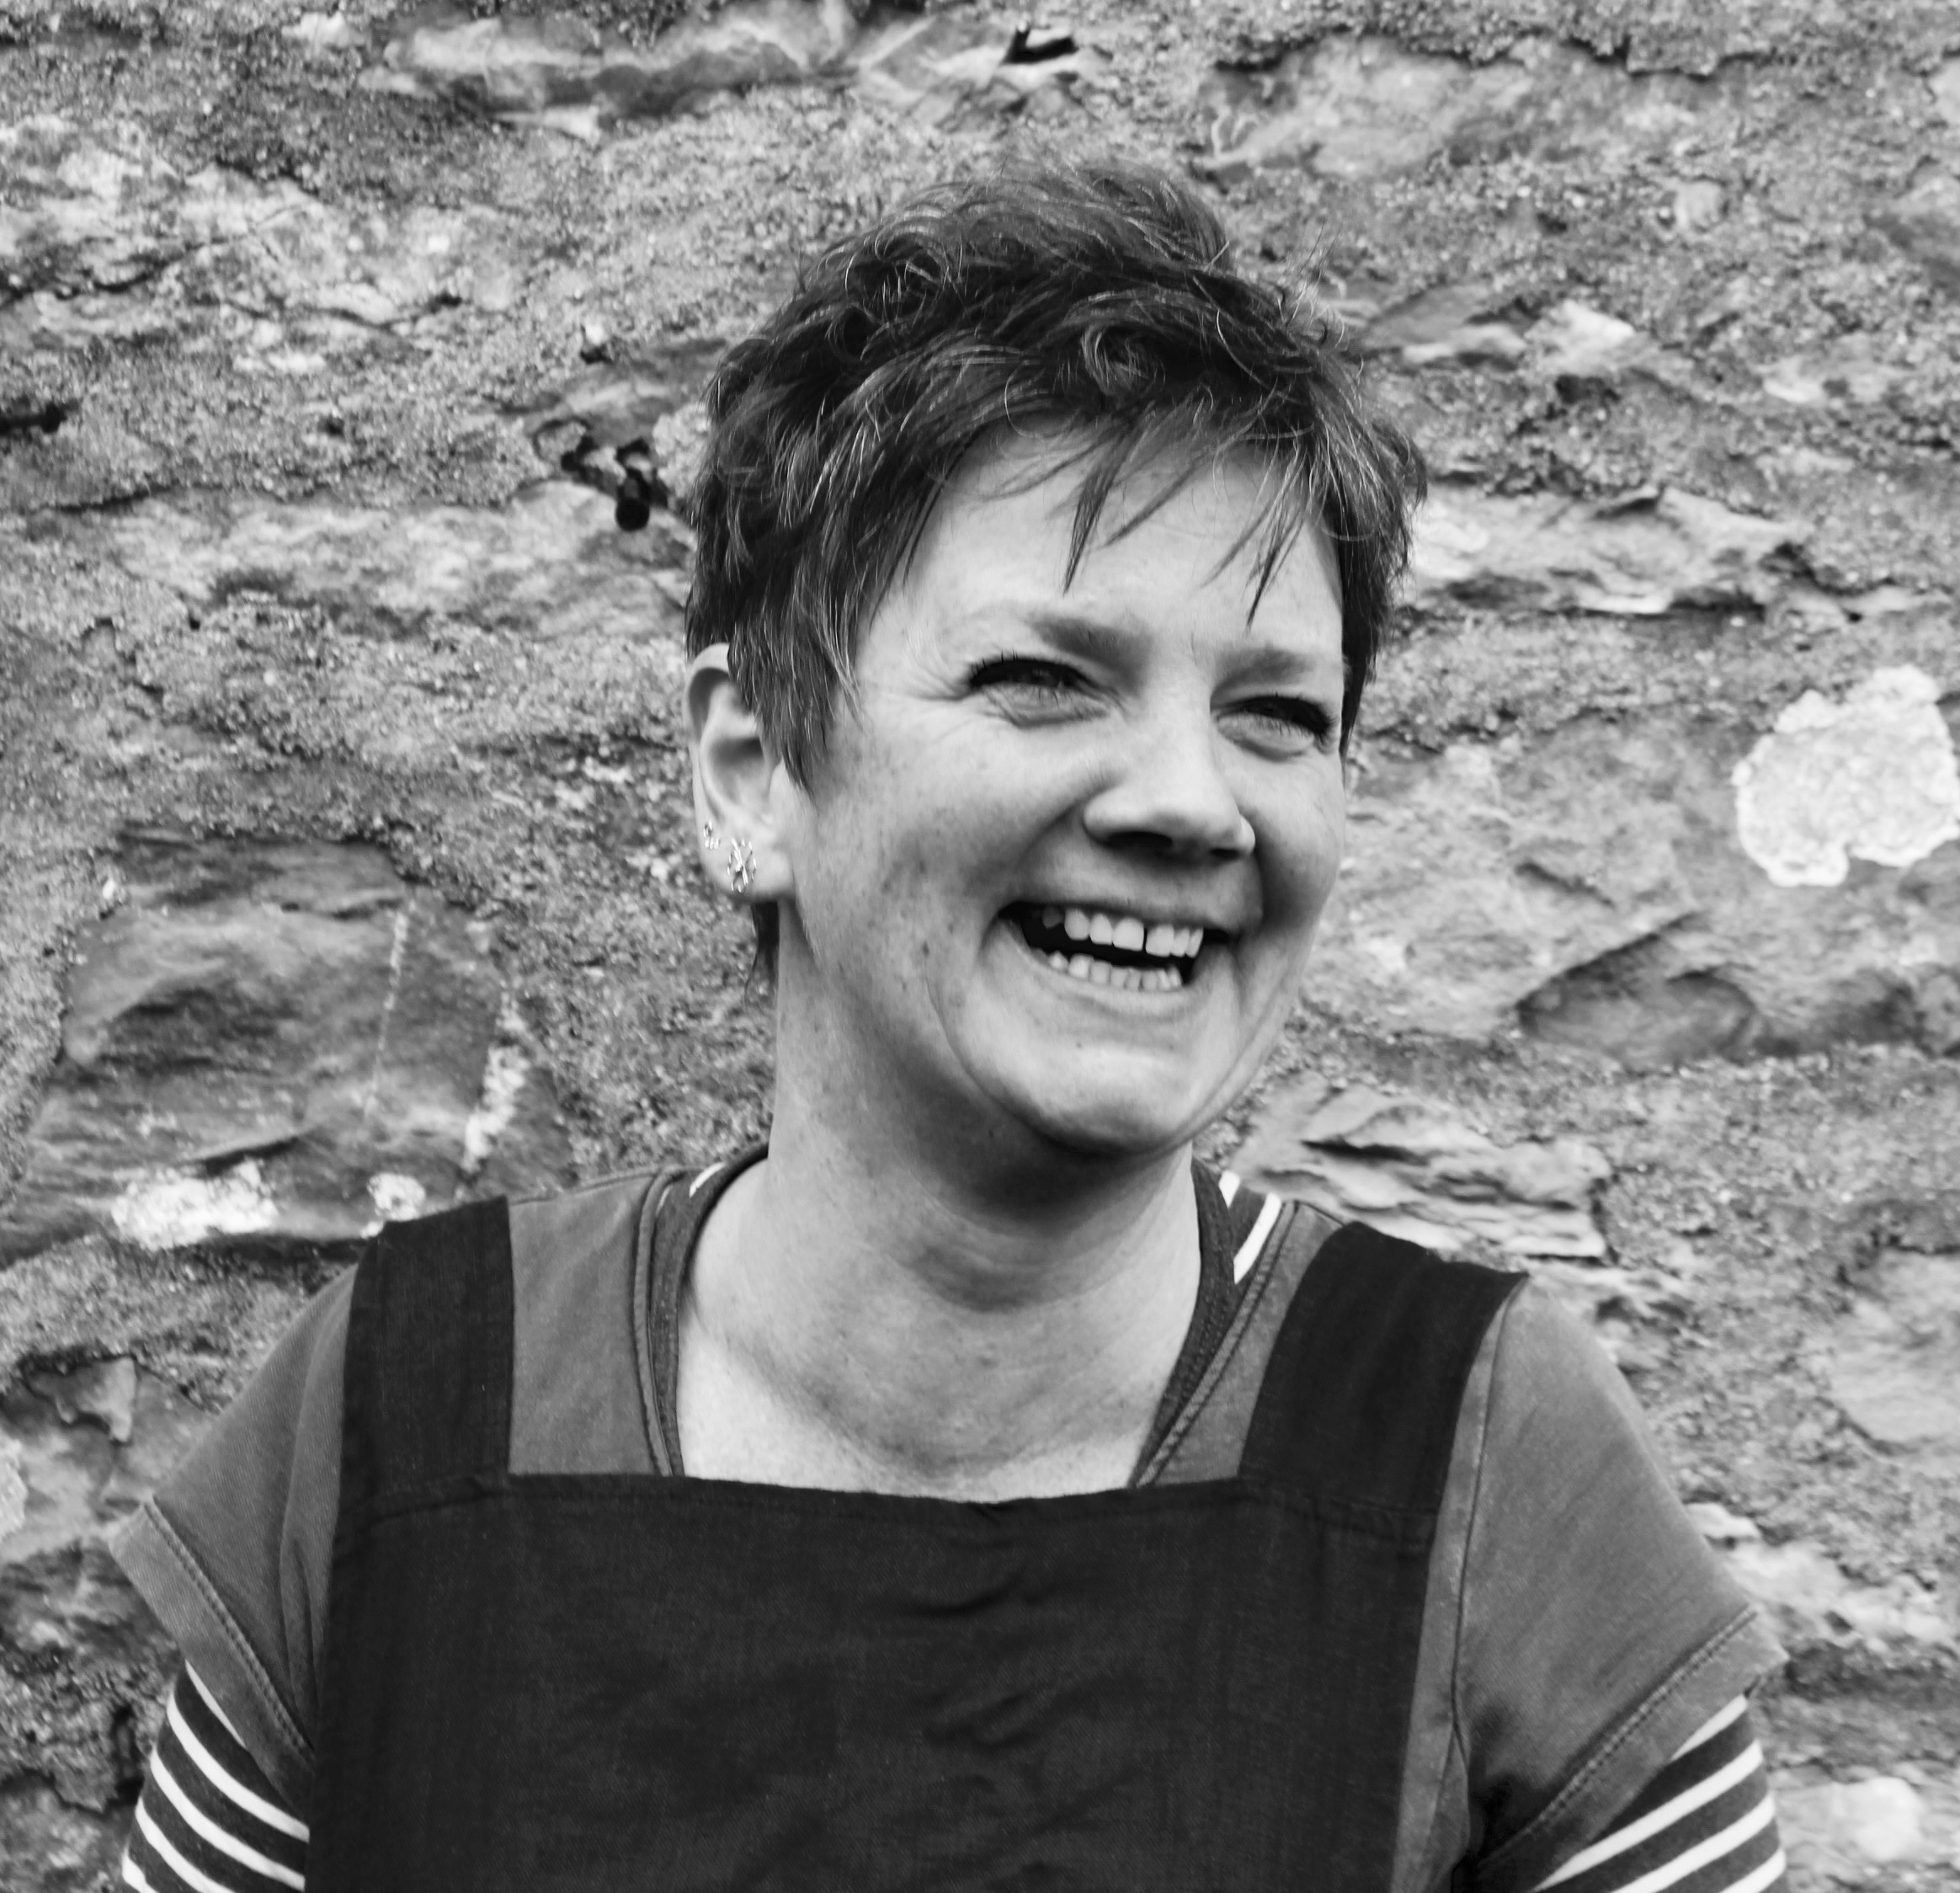 """Richenda MacGregor  Creative Director  Richenda Macgregor is the creative director of studio 45. A potter for 25 years, she also spent several years running a teaching centre for ceramics. Richenda is passionate about Making and passionate about ceramics in general. Constantly learning, this quality of engagement is reflected in her enthusiasm and thorough teaching style. She has successfully trained 4 apprentices over recent years and teaches and facilitates at Schumacher College. Studio 45 is the culmination of a long held vision finally coming to fruition. Richenda lives in Dartington with her partner Andrew and makes porcelain thrown ware in the 'shed' at the bottom of the garden.  """"It is important for us to begin to investigate our heritage and to discover or rediscover the materials that are left unused on our doorstep. So much of the raw materials Artists and Craftspeople use has travelled unnecessarily or has been mined in atrocious working conditions. We re-empower ourselves when we change our working practice to include local materials harvested sustainably and begin to produce work indigenous to the environment and place we live in."""" (Richenda)"""